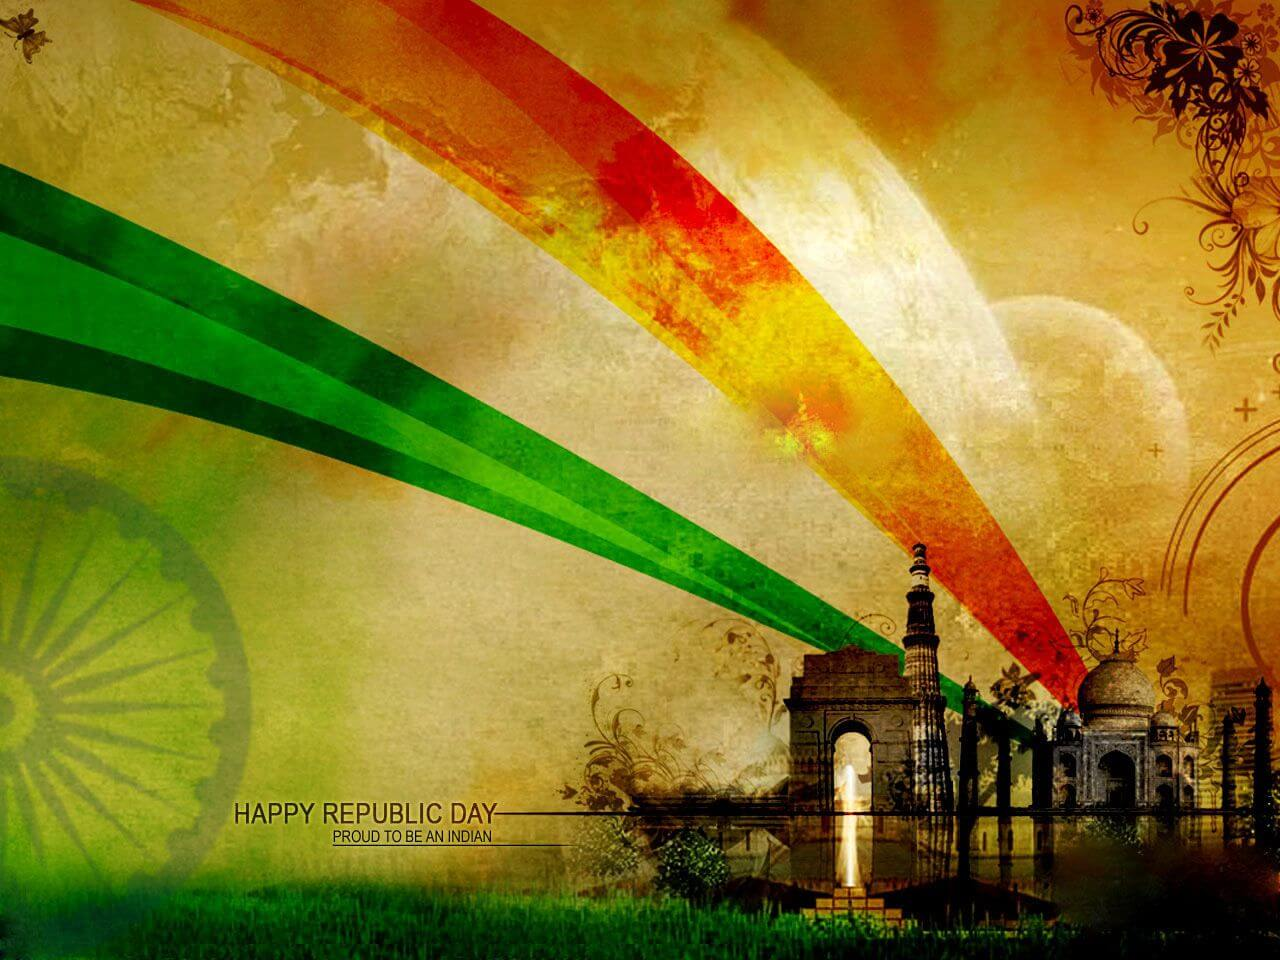 happy republic day wishes proud to be an indian 26 january hd wallpaper